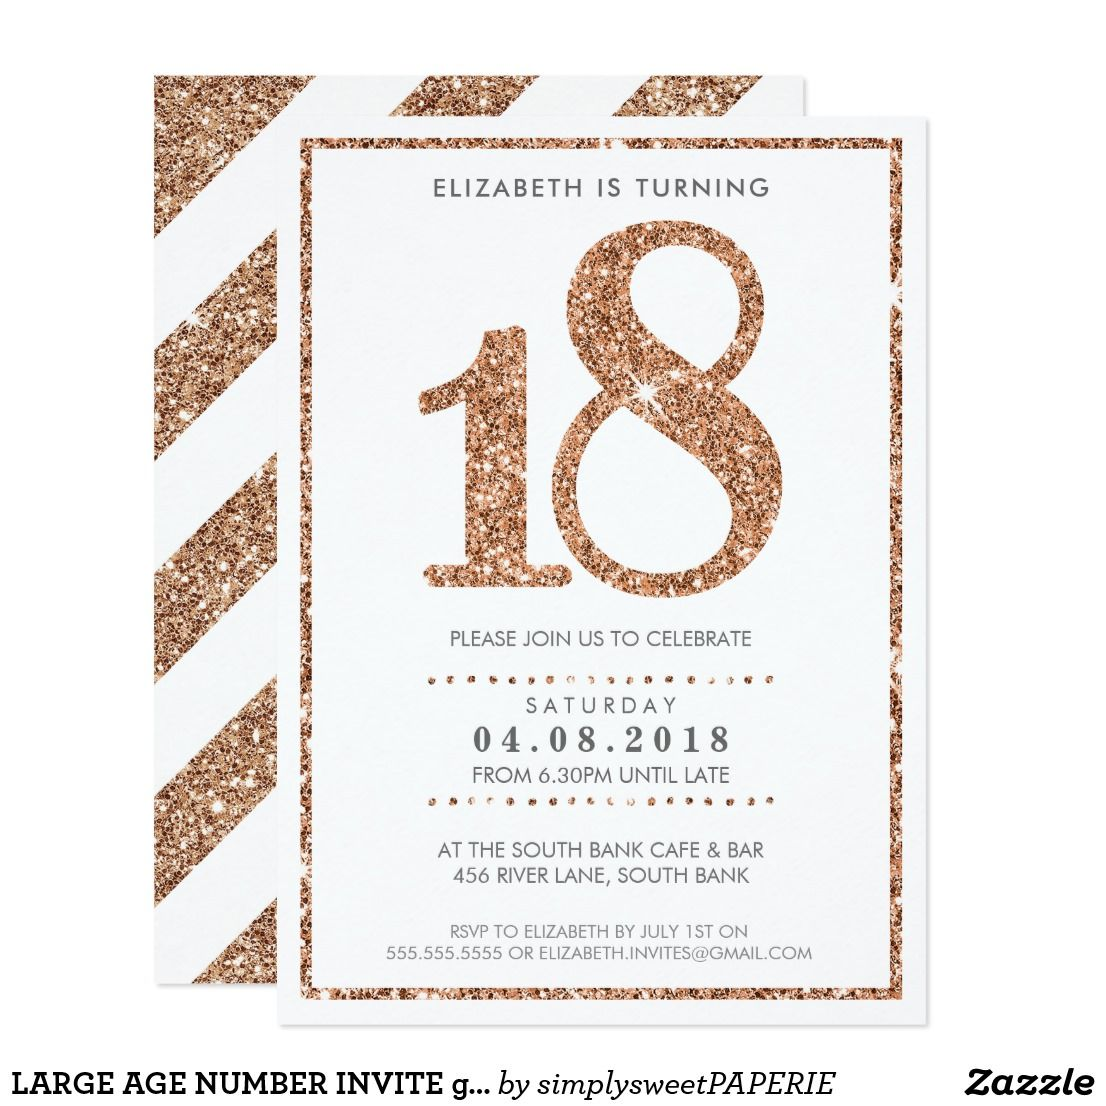 Large Age Number Invite Glam 18 Rose Gold Glitter Zazzle Com In 2021 Invitations Birthday Ideas For Her Birthday Invitations Girl